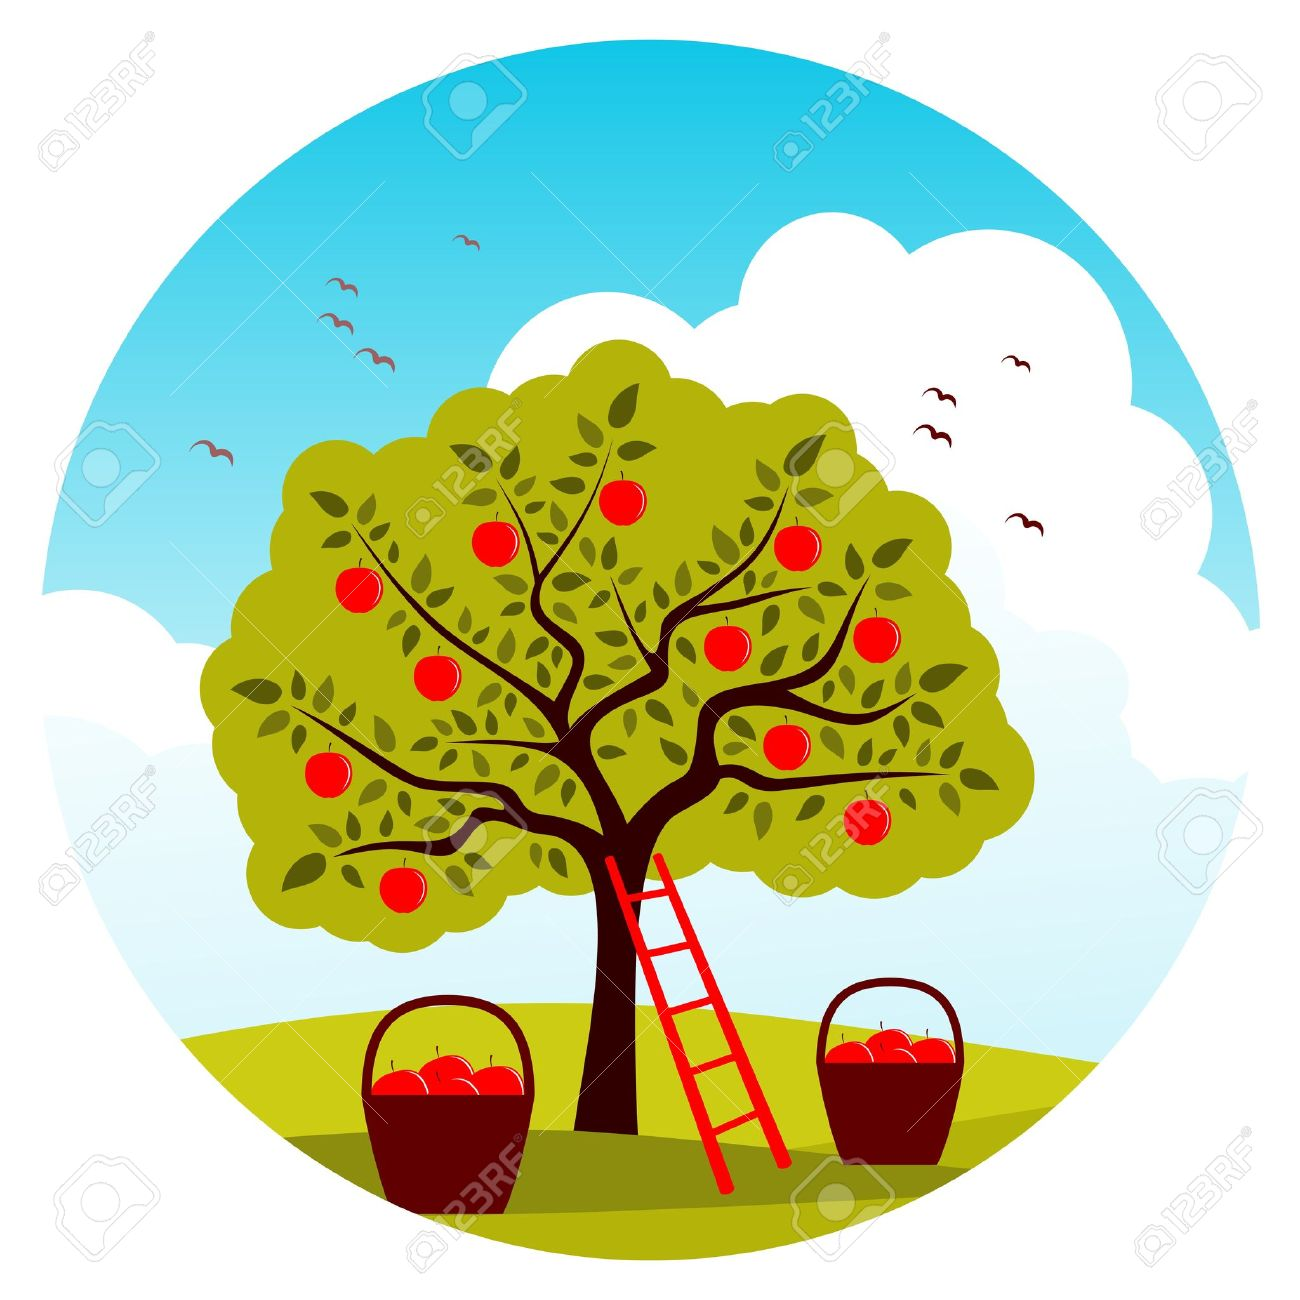 Apple Tree, Ladder And Baskets Of Apples Royalty Free Cliparts.